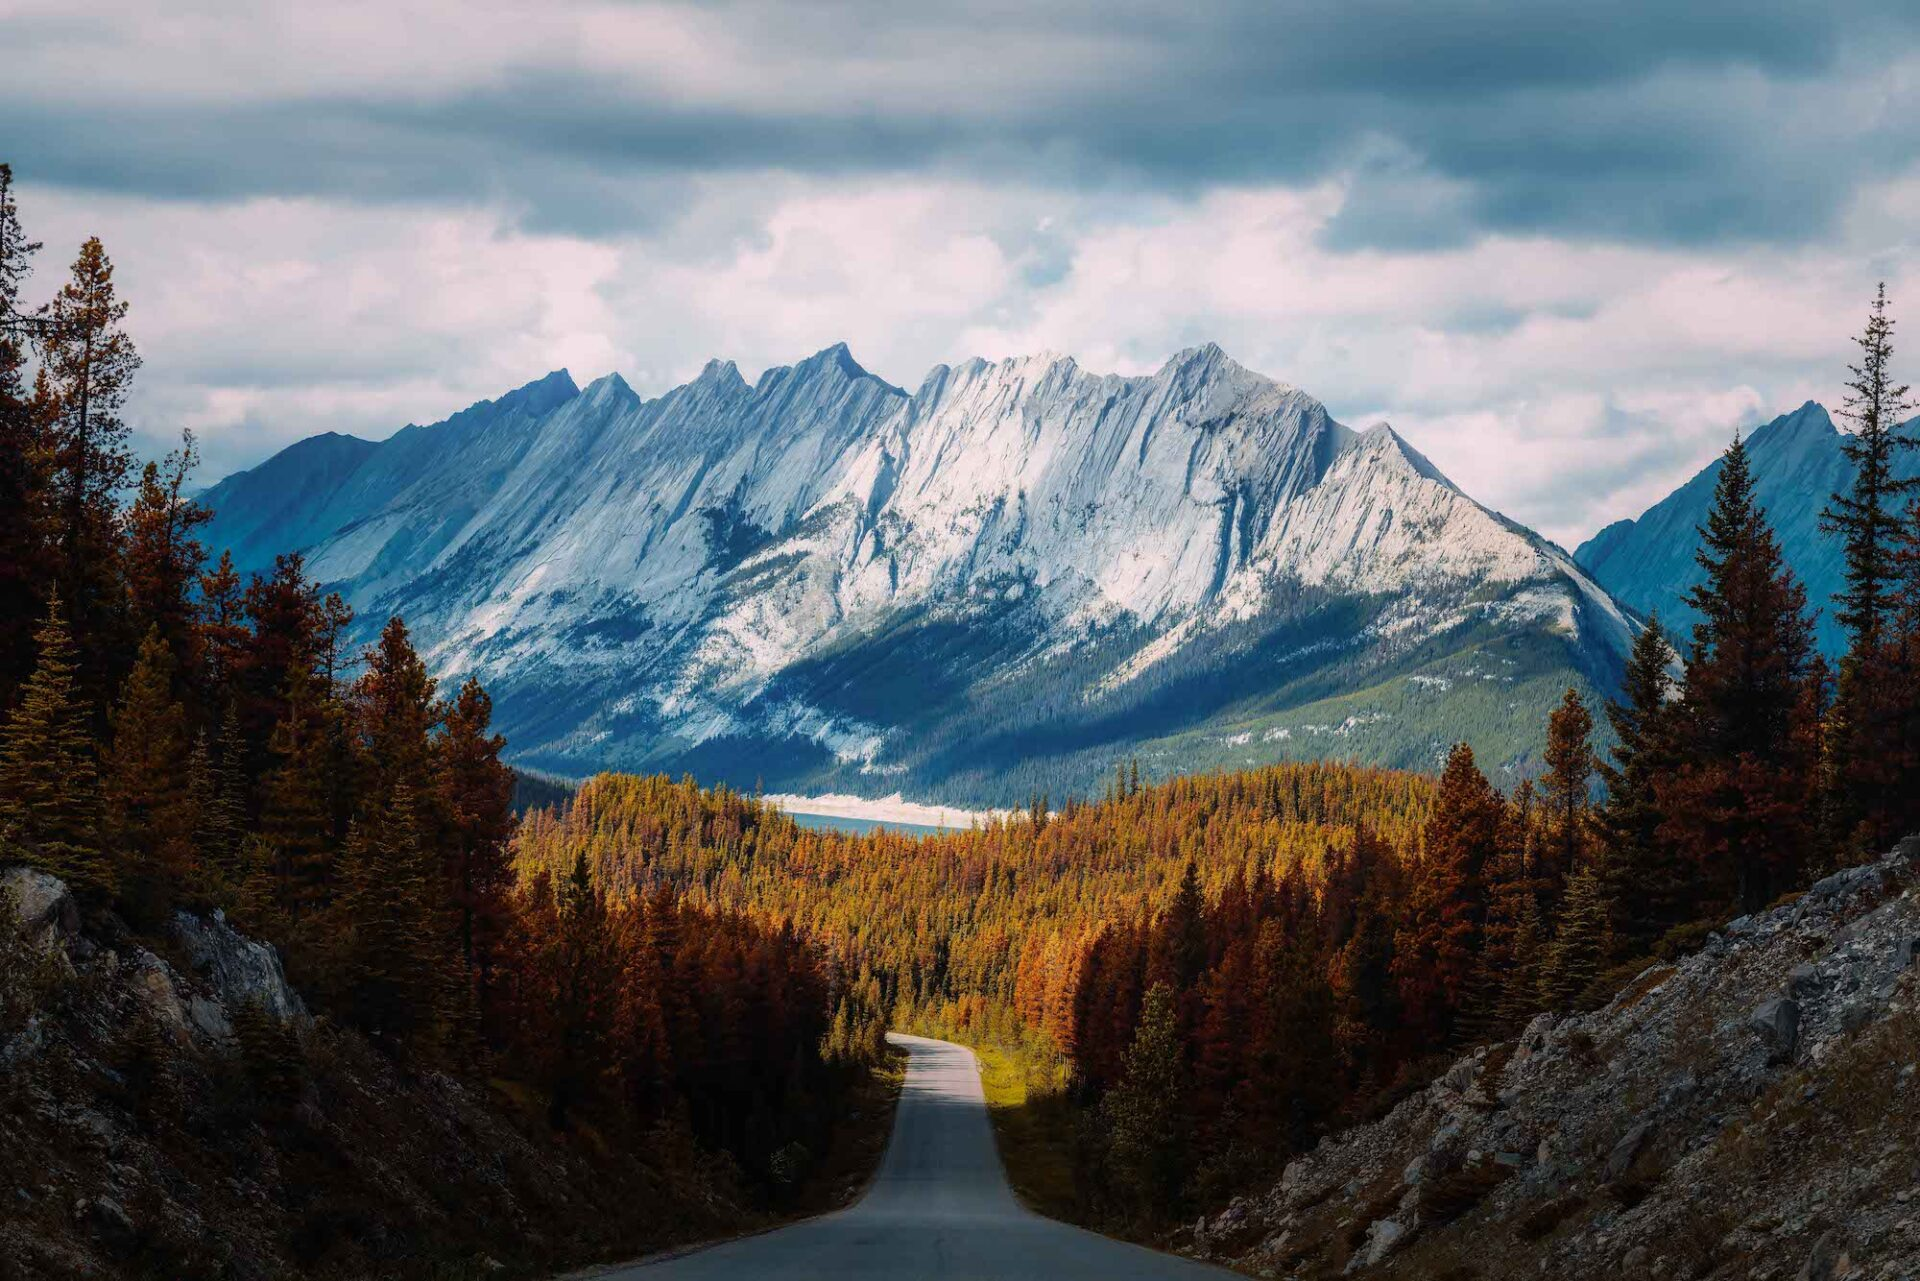 Destinations across Canada photo by Sanjay Chauhan Images of Canada